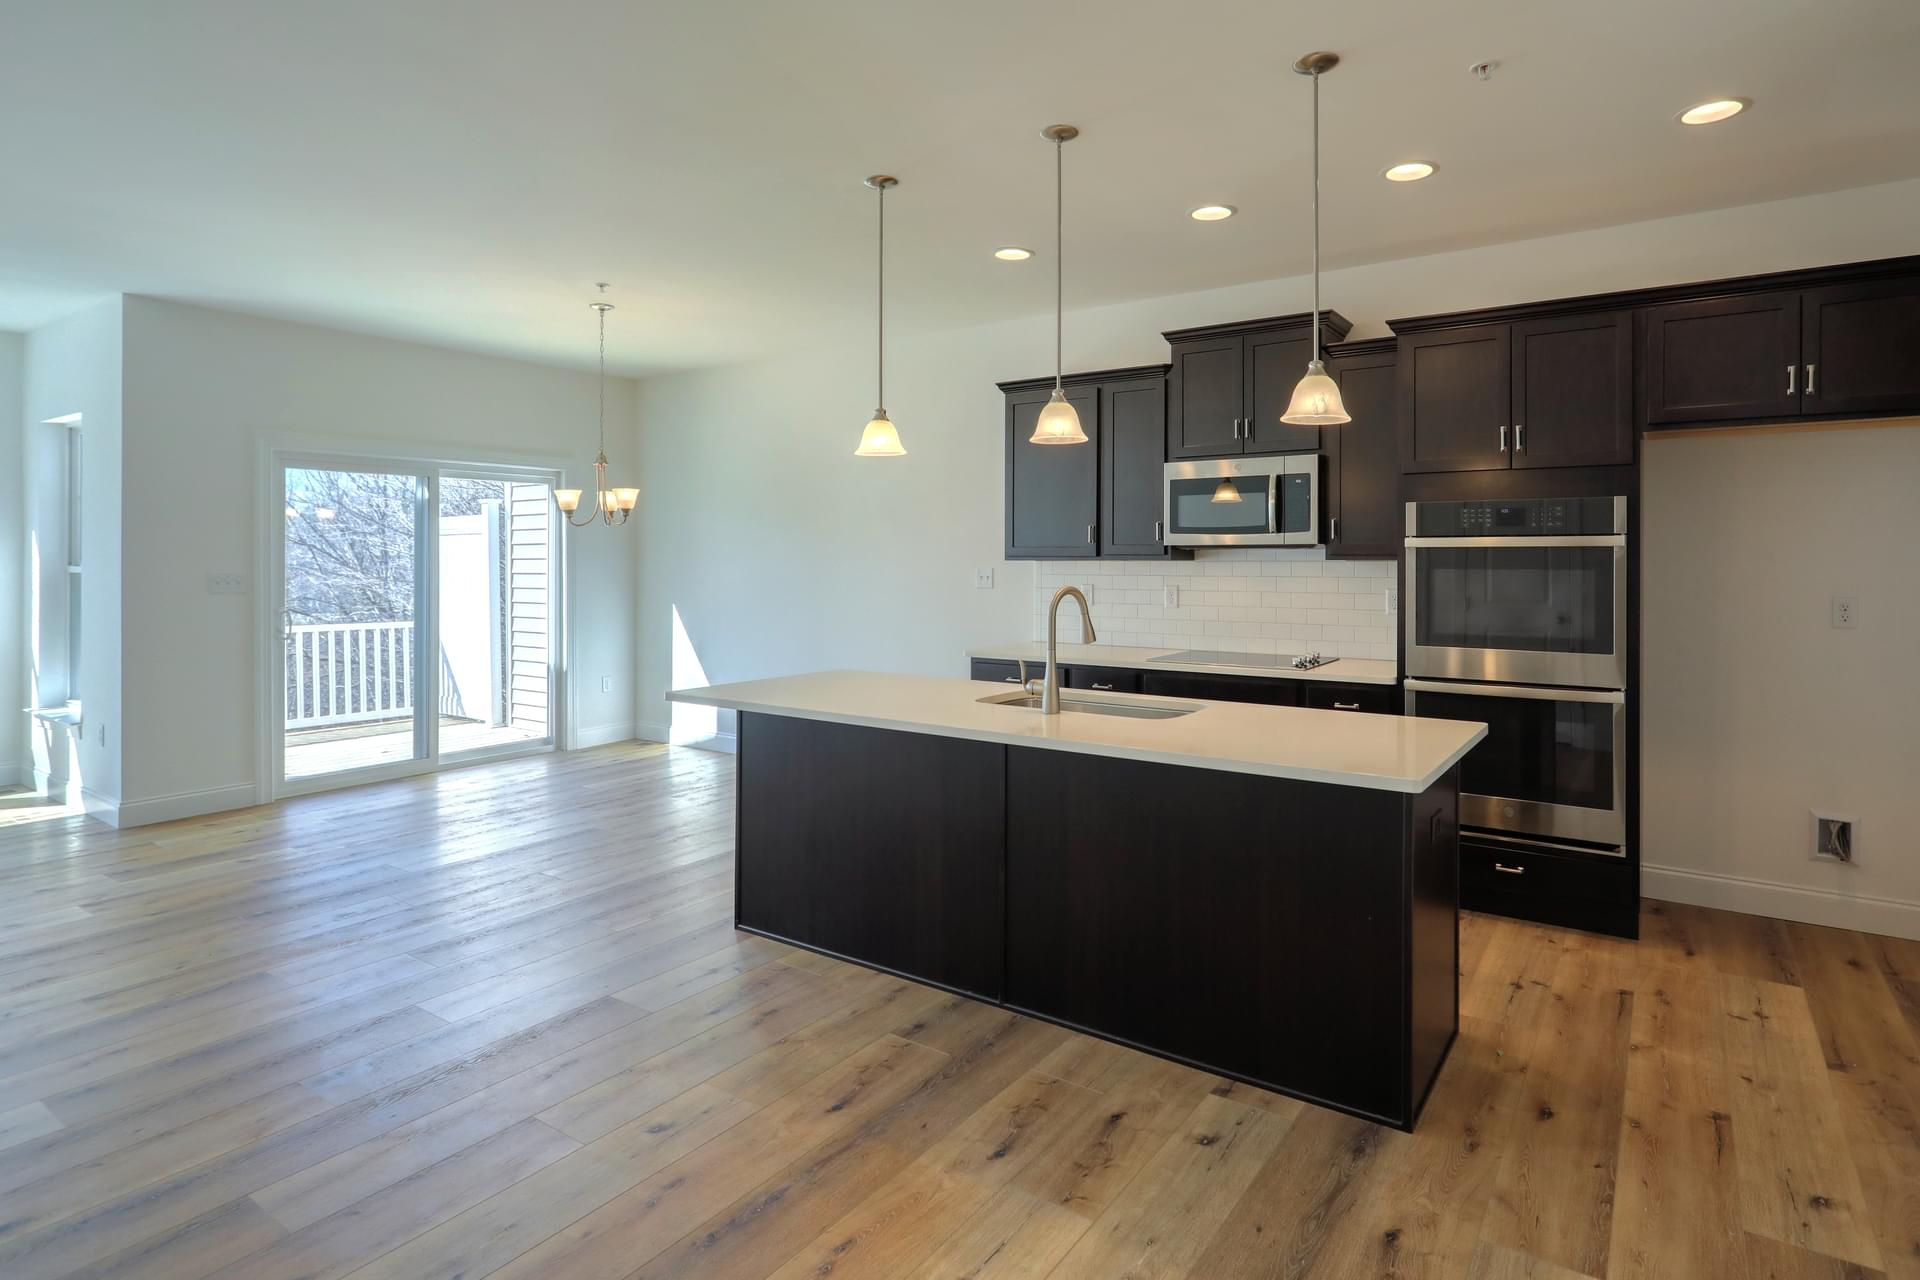 1,766sf New Home in Pottstown, PA